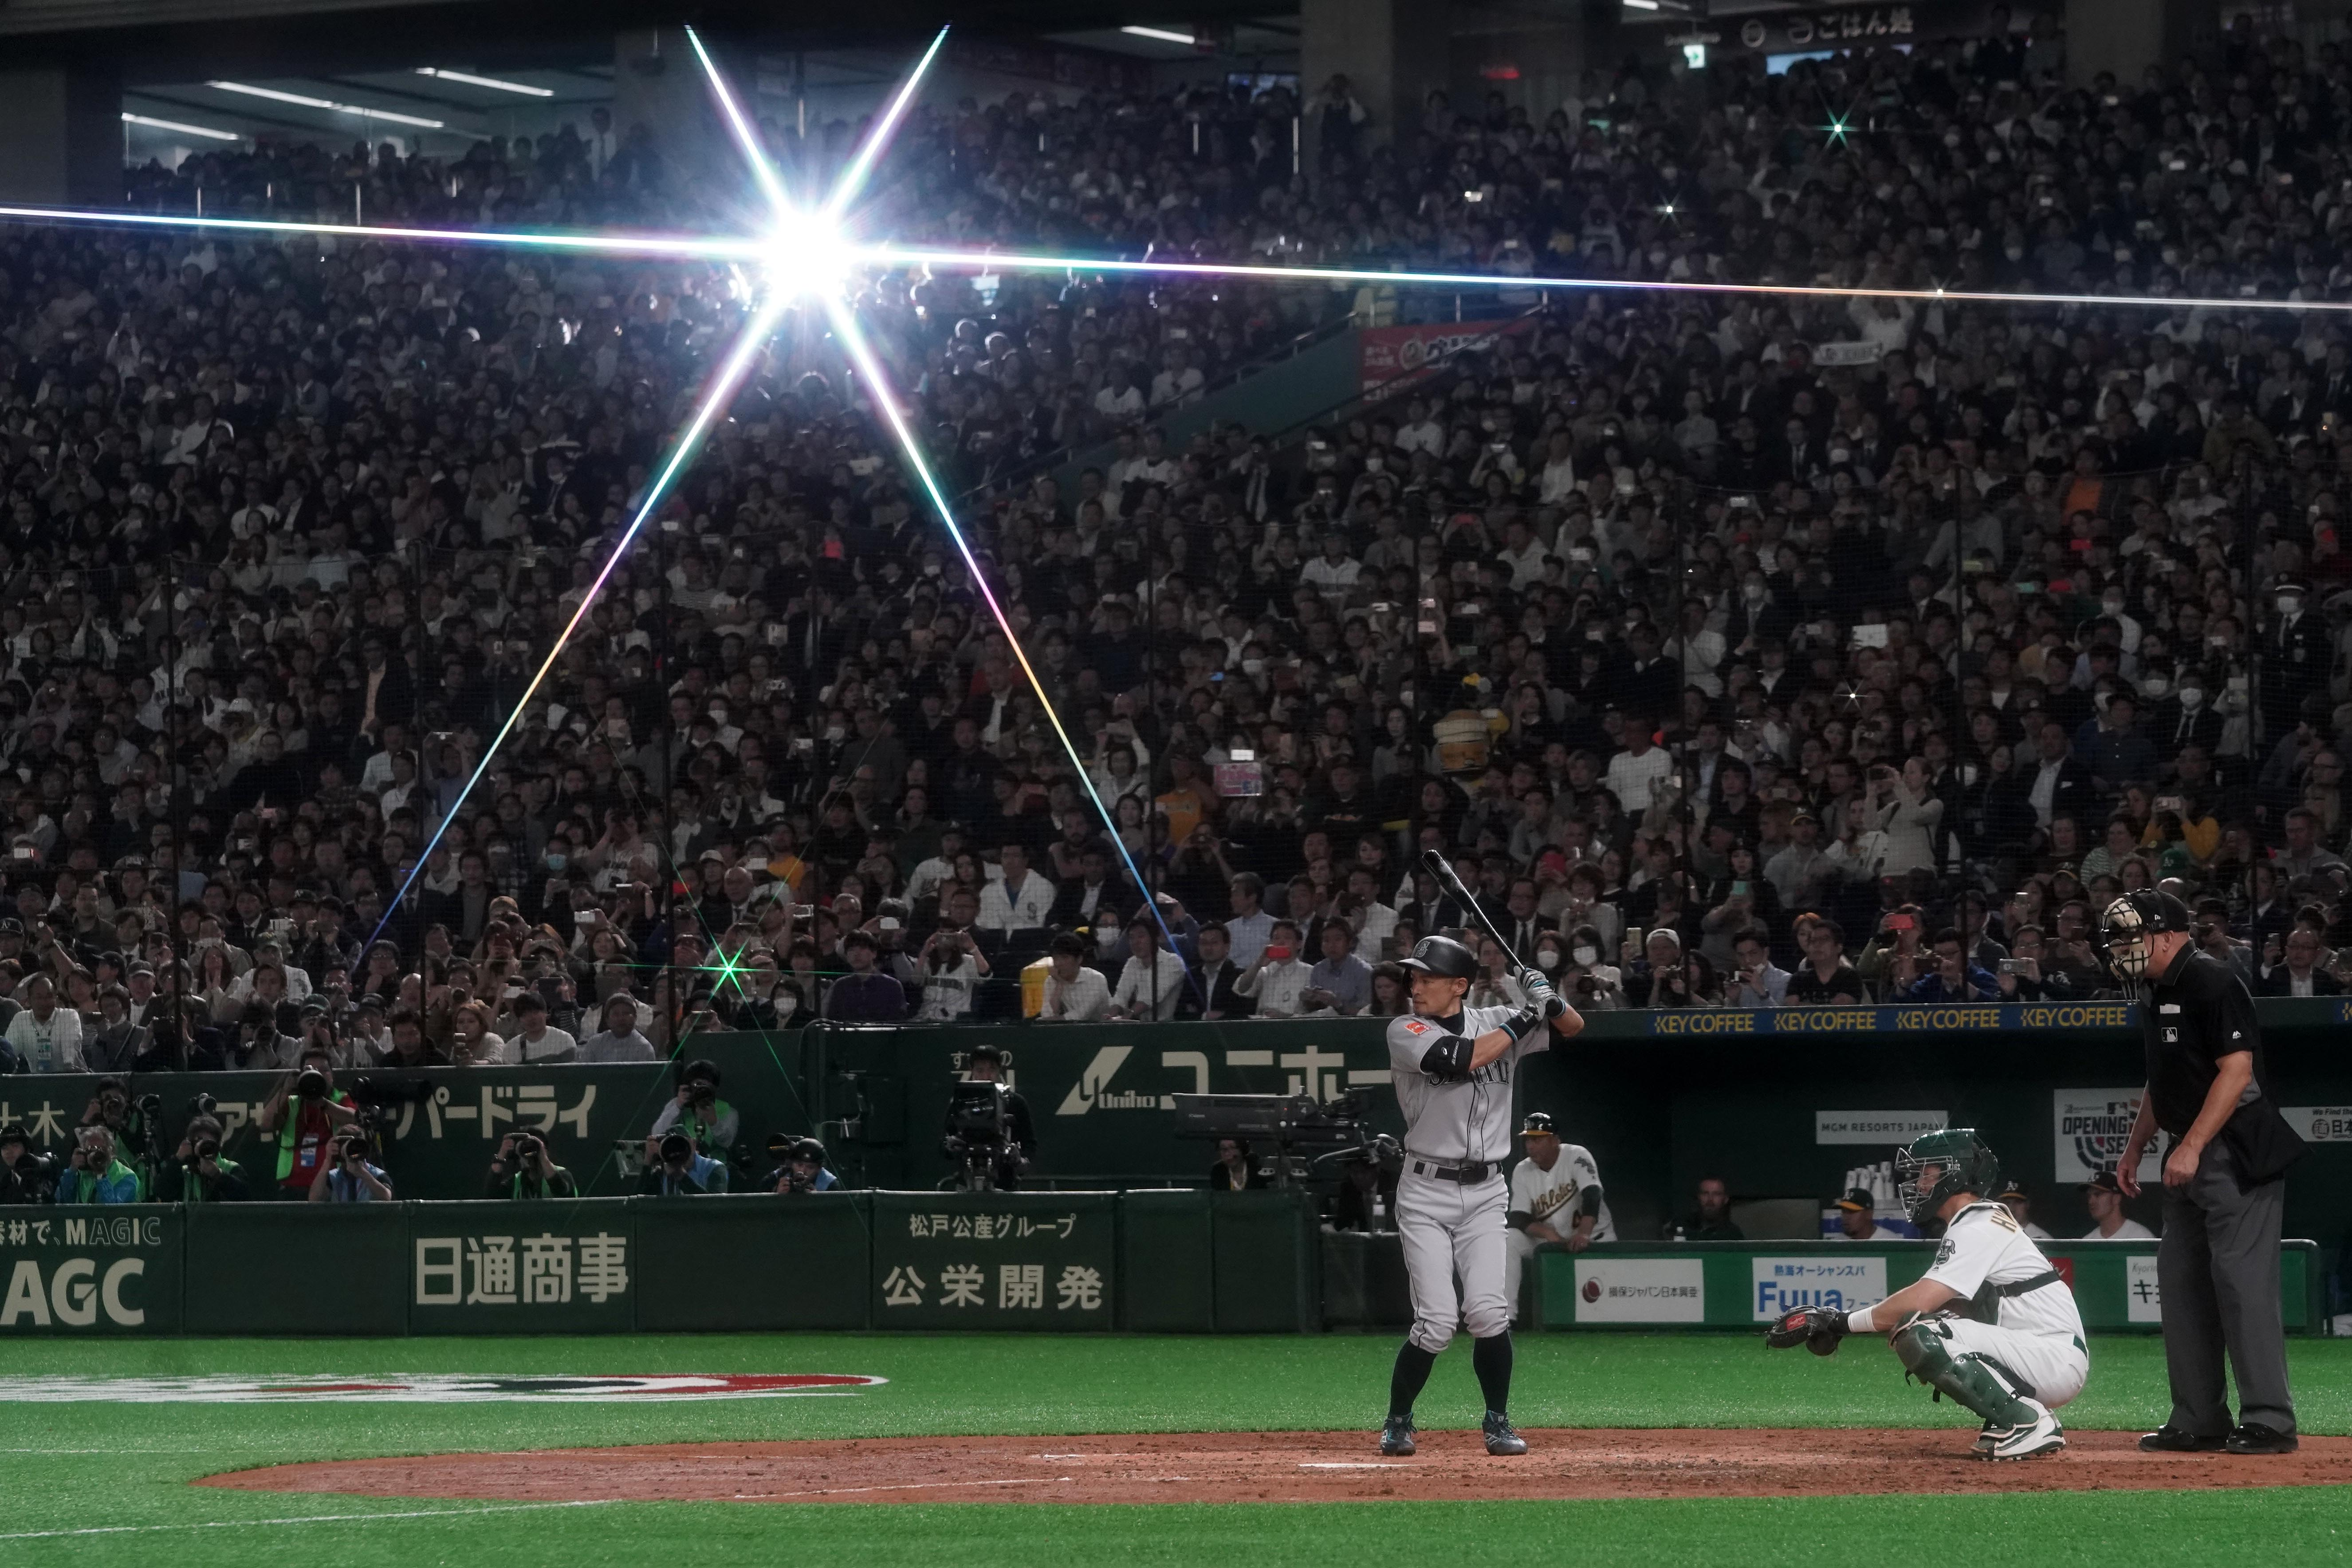 TOKYO, JAPAN - MARCH 20: Outfielder Ichiro Suzuki #51 of the Seattle Mariners at bat in the 4th inning during the game between Seattle Mariners and Oakland Athletics at Tokyo Dome on March 20, 2019 in Tokyo, Japan. (Photo by Masterpress/Getty Images)